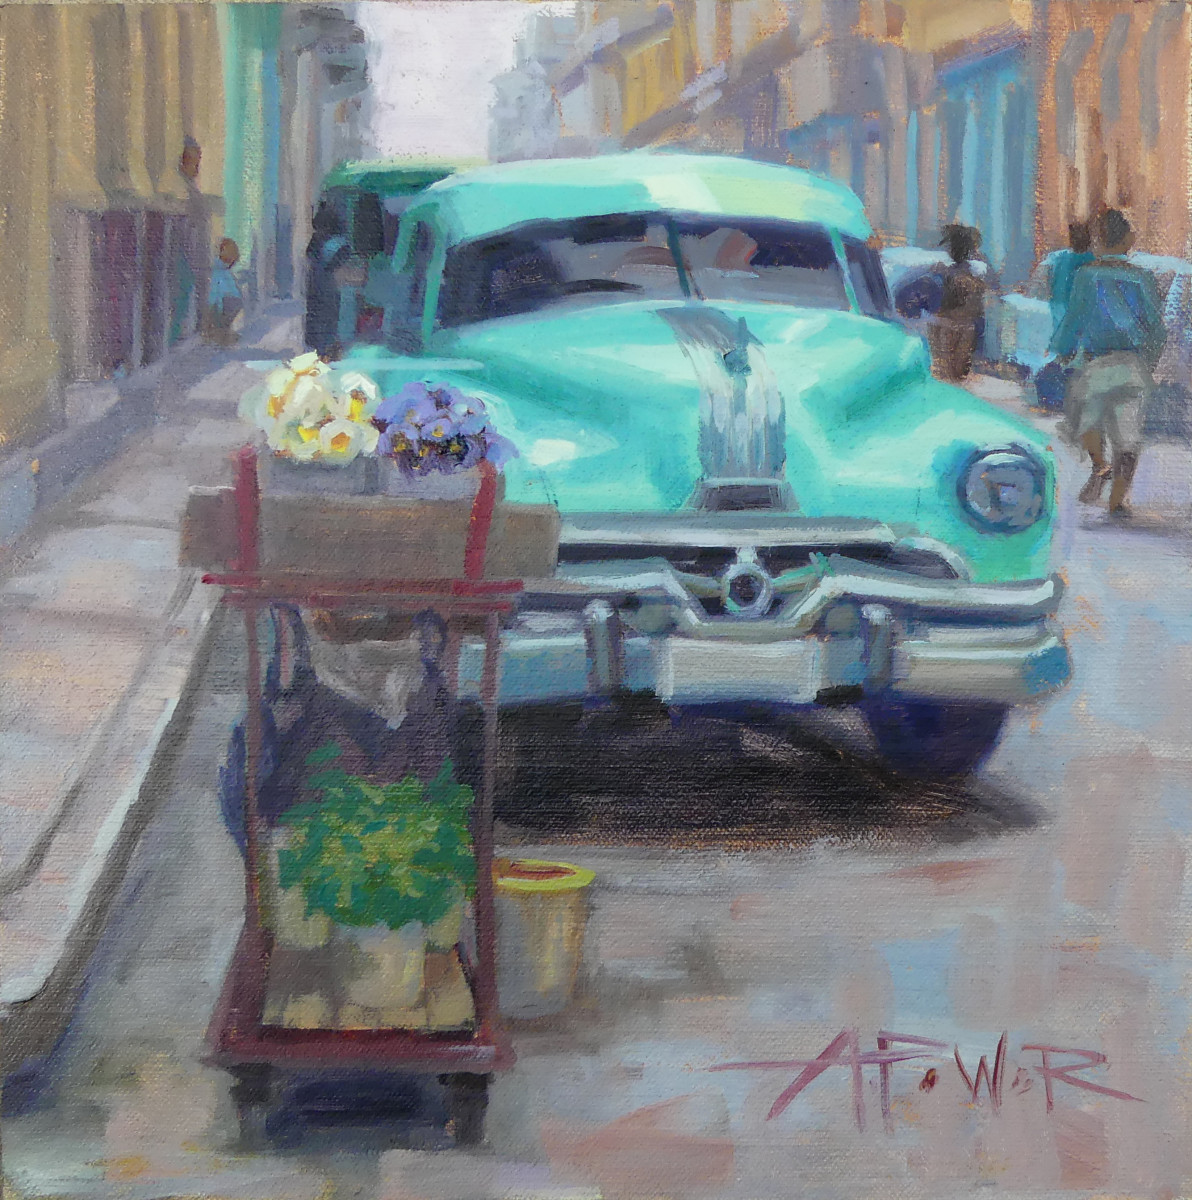 Cuban Ingenuity by Anette Power